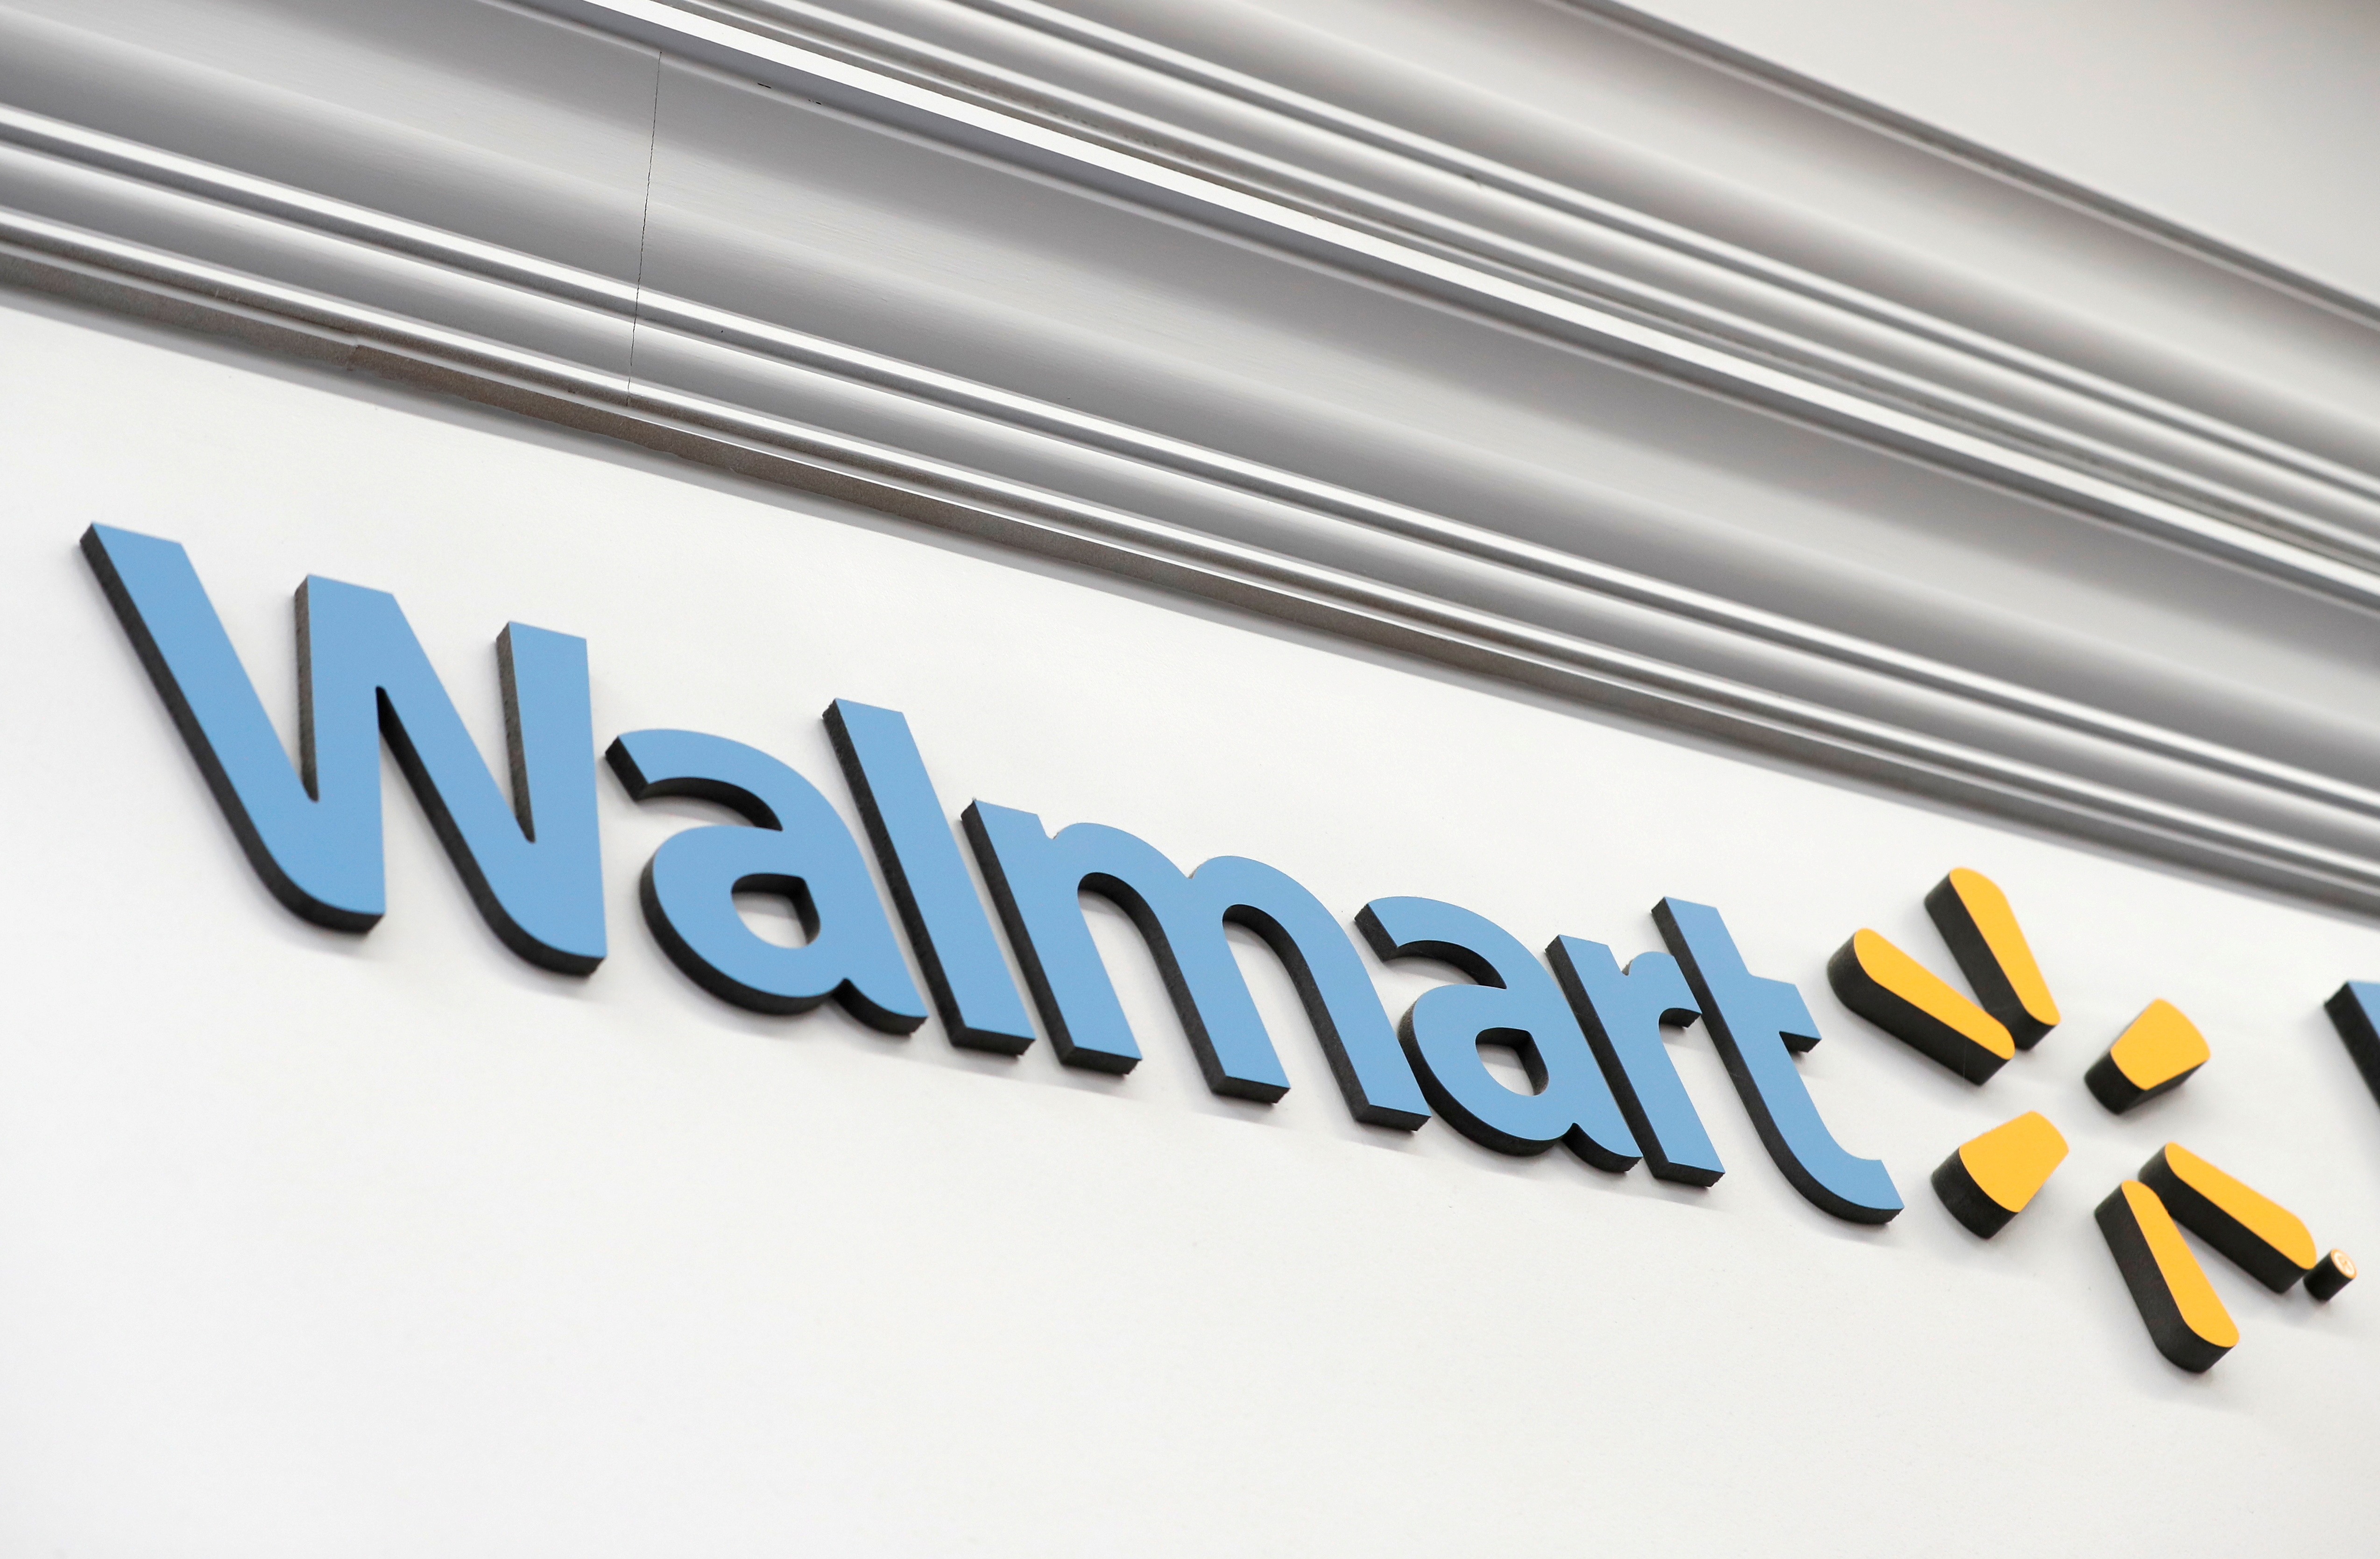 A Walmart sign is seen inside its department store in West Haven, Connecticut, U.S., February 17, 2021. REUTERS/Mike Segar